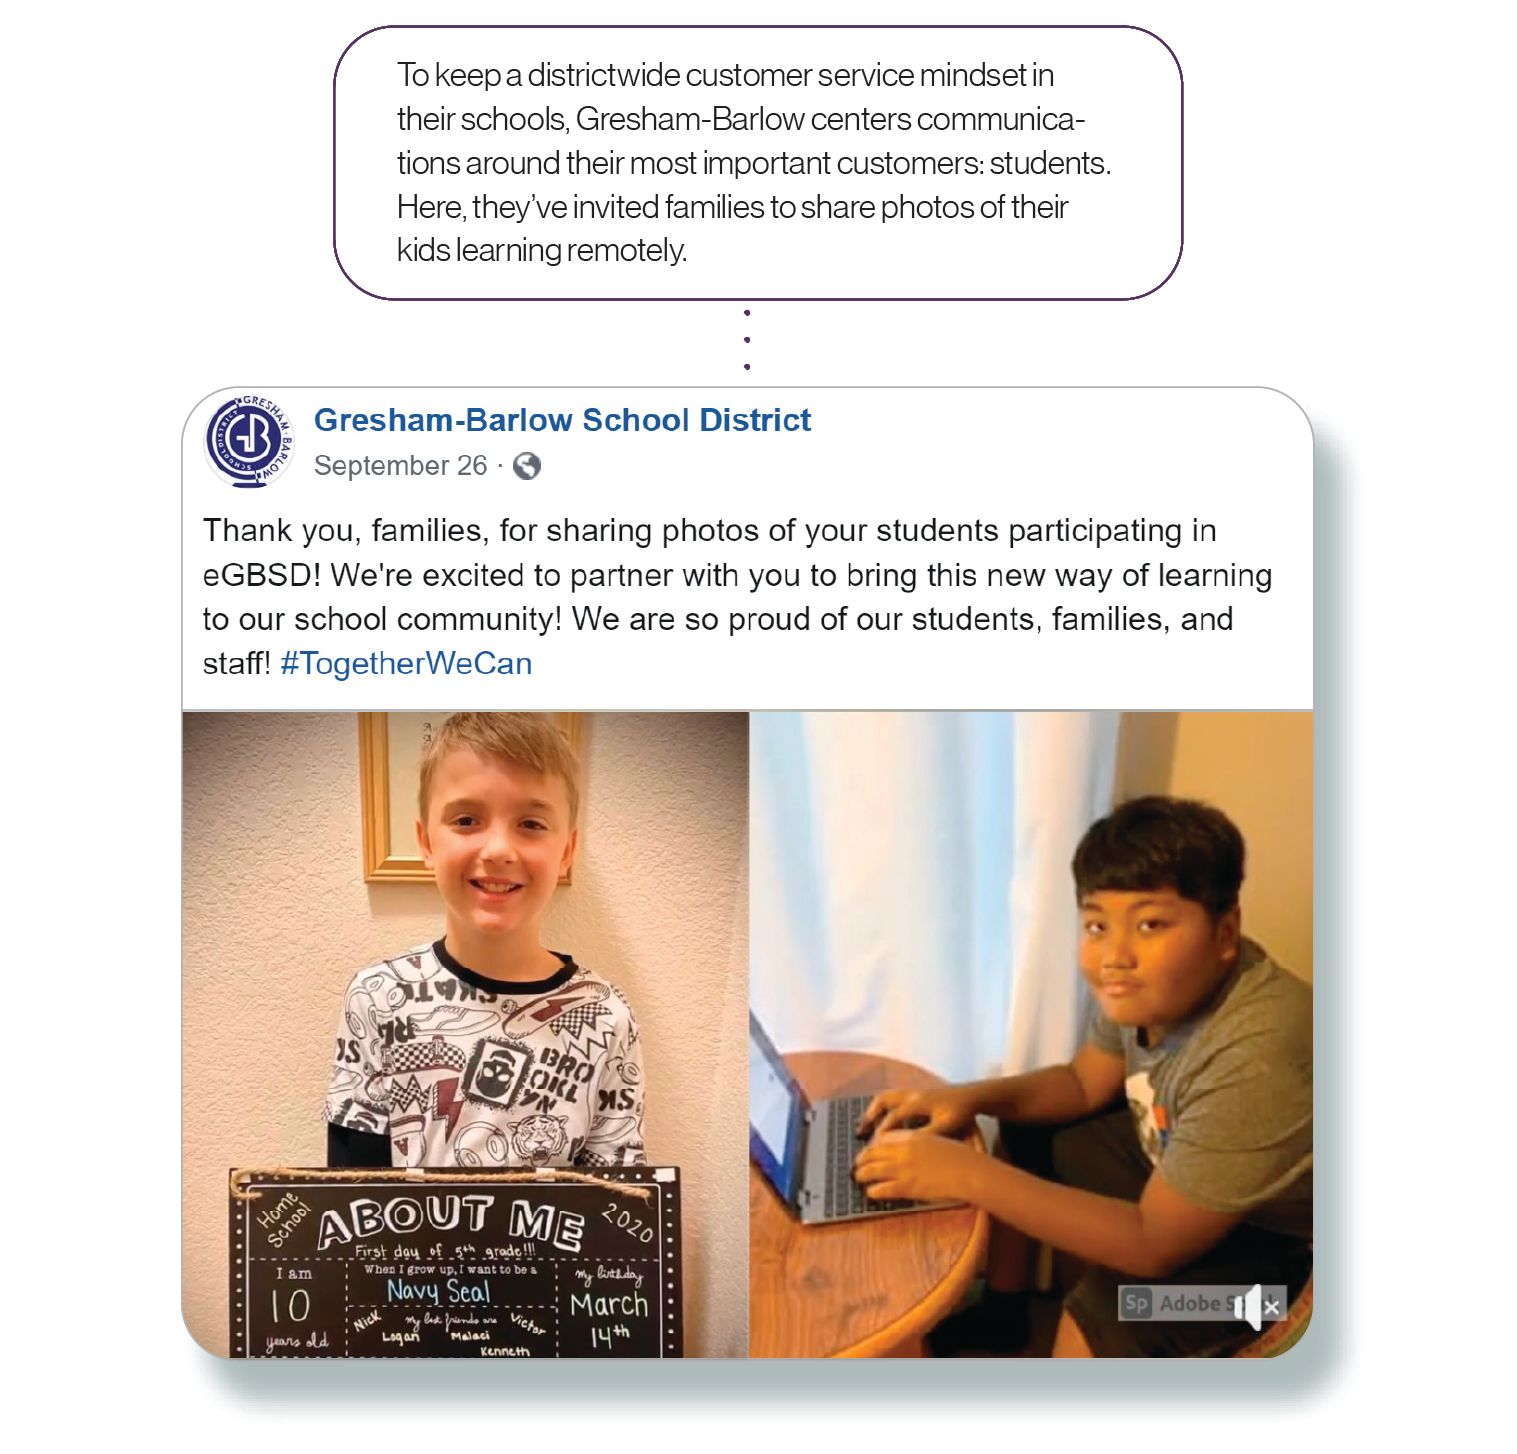 Image: Facebook post from Gresham-Barlow that reads: 'Thank you, families, for sharing photos of your students participating in eGBSD! We're excited to partner with you to bring this new way of learning to our school community! We are so proud of our students, families, and staff!' SchoolCEO then adds some commentary — 'To keep a districtwide customer service mindset in their schools, Gresham-Barlow centers communications around their most important customers: students. Here, they've invited families to share photos of their kids learning remotely.'